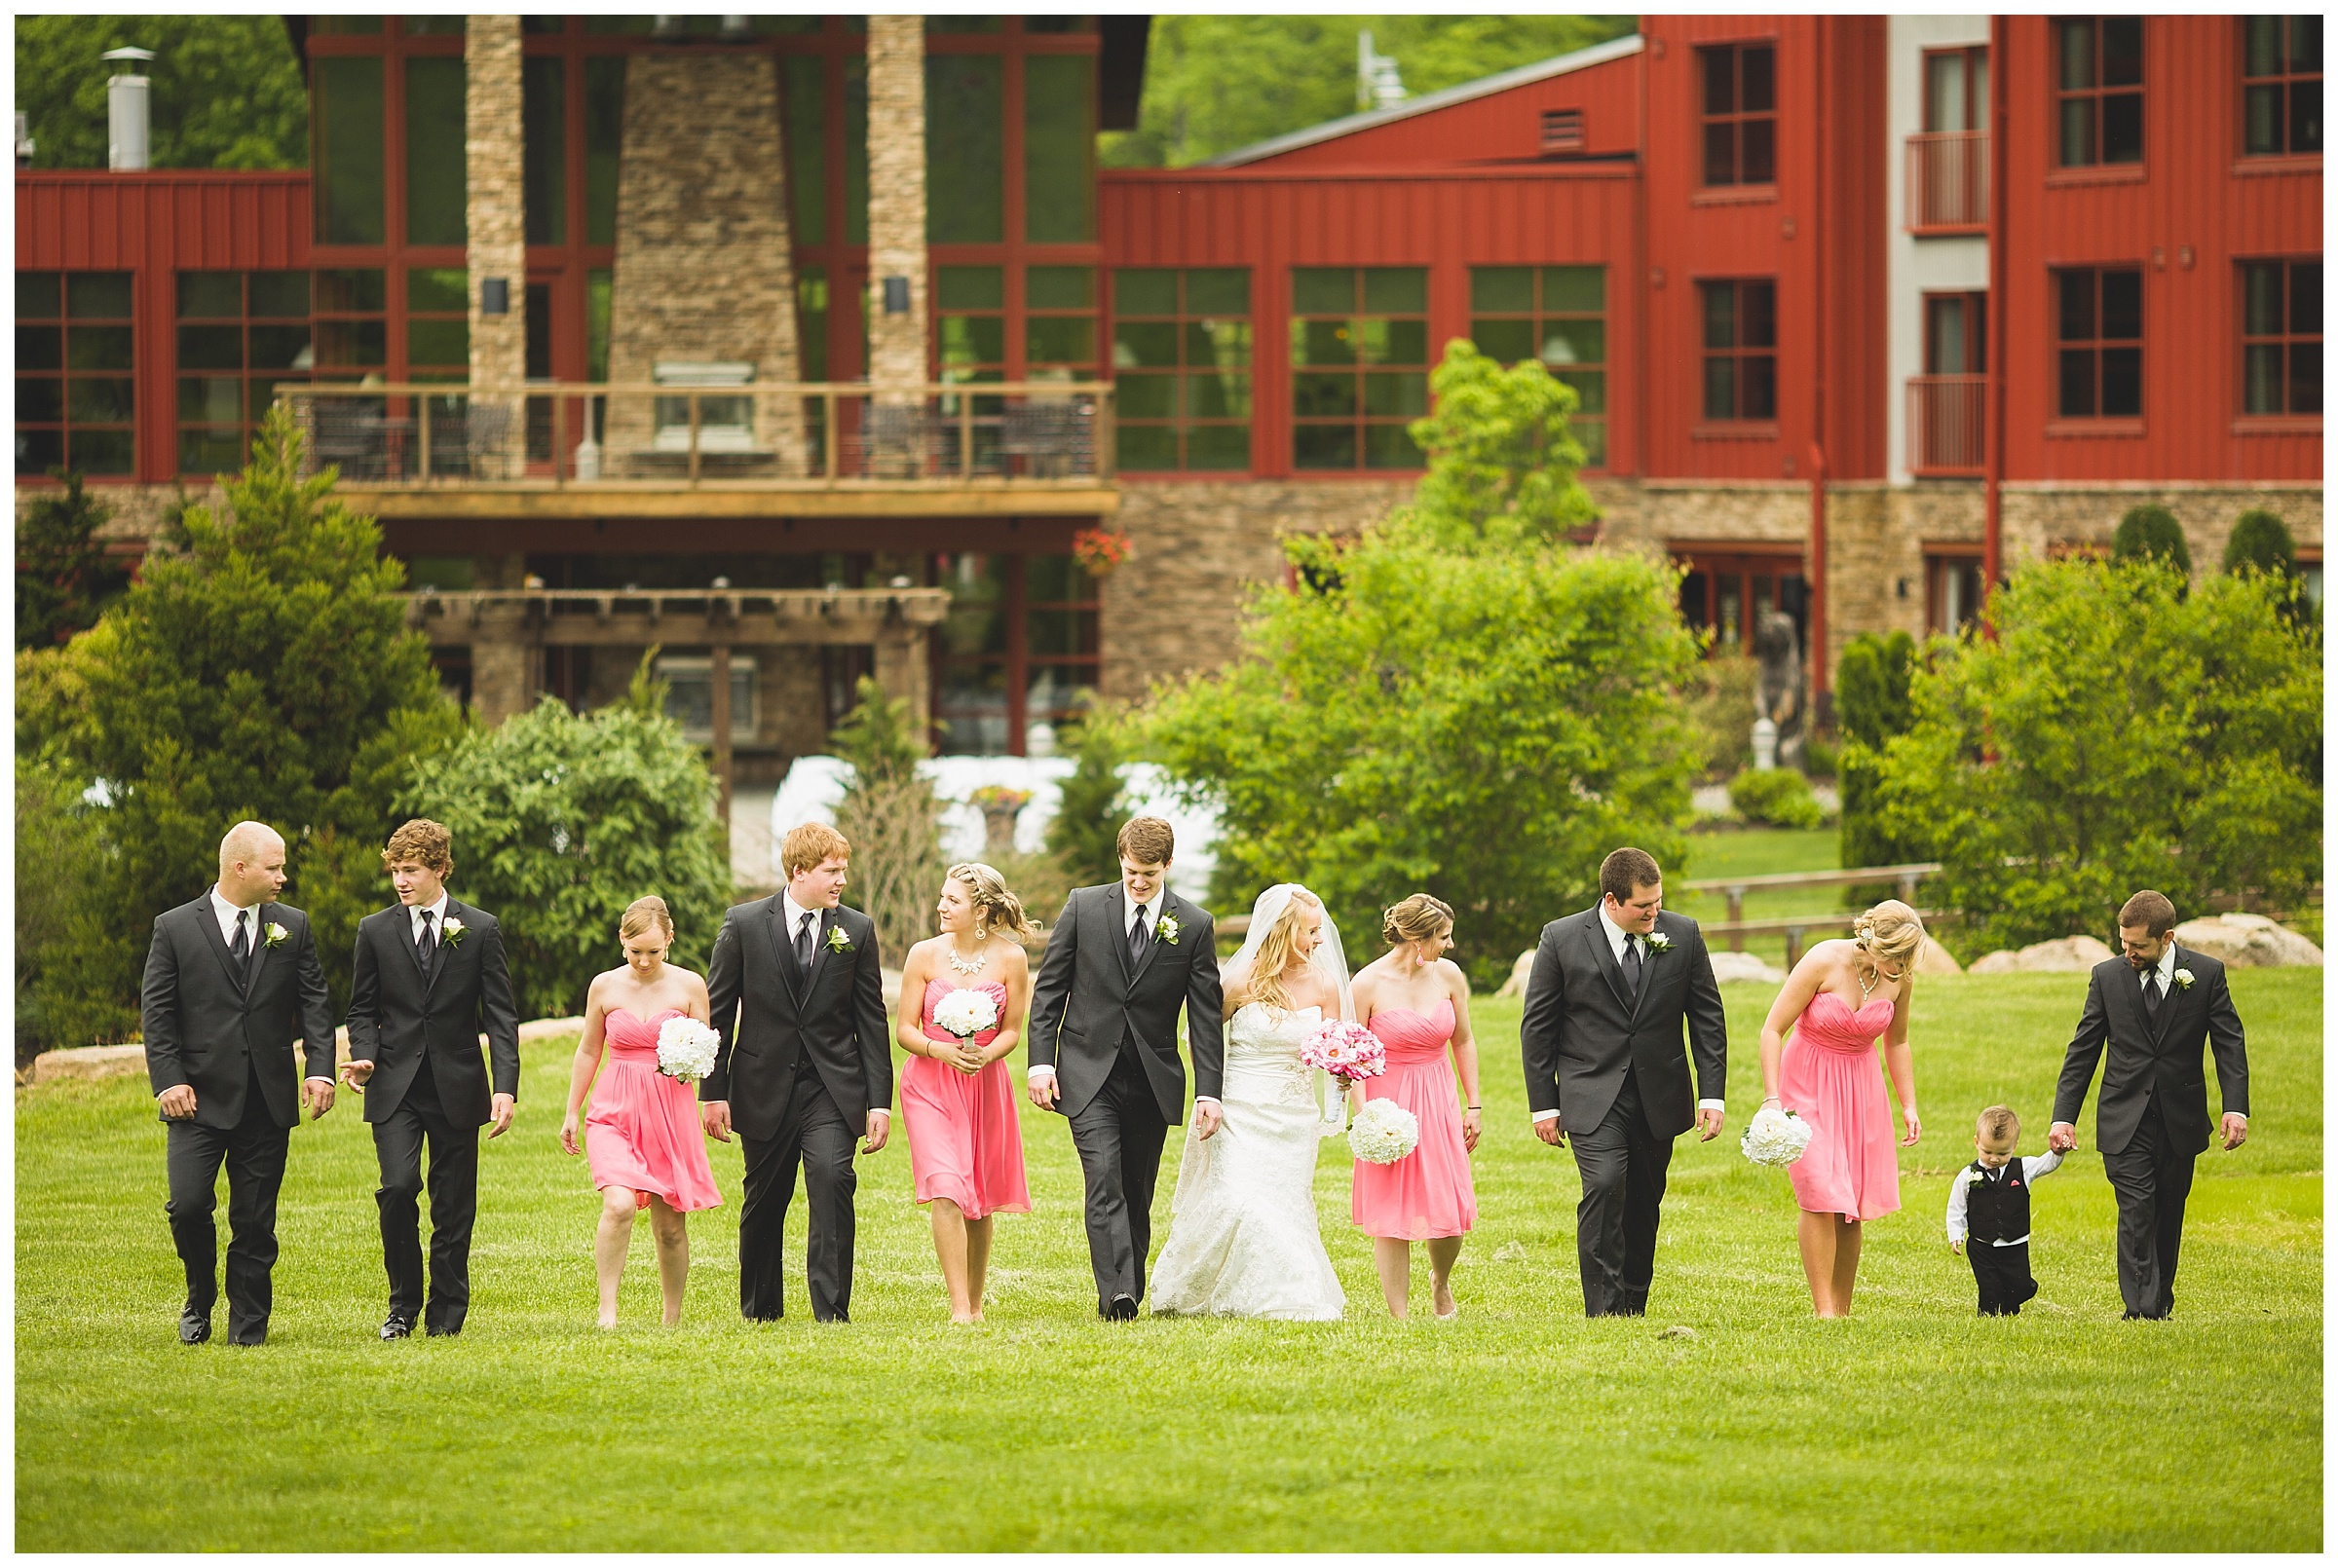 0023_Kelly and Josh's Wedding, Bear Creek Resort, PA_0023